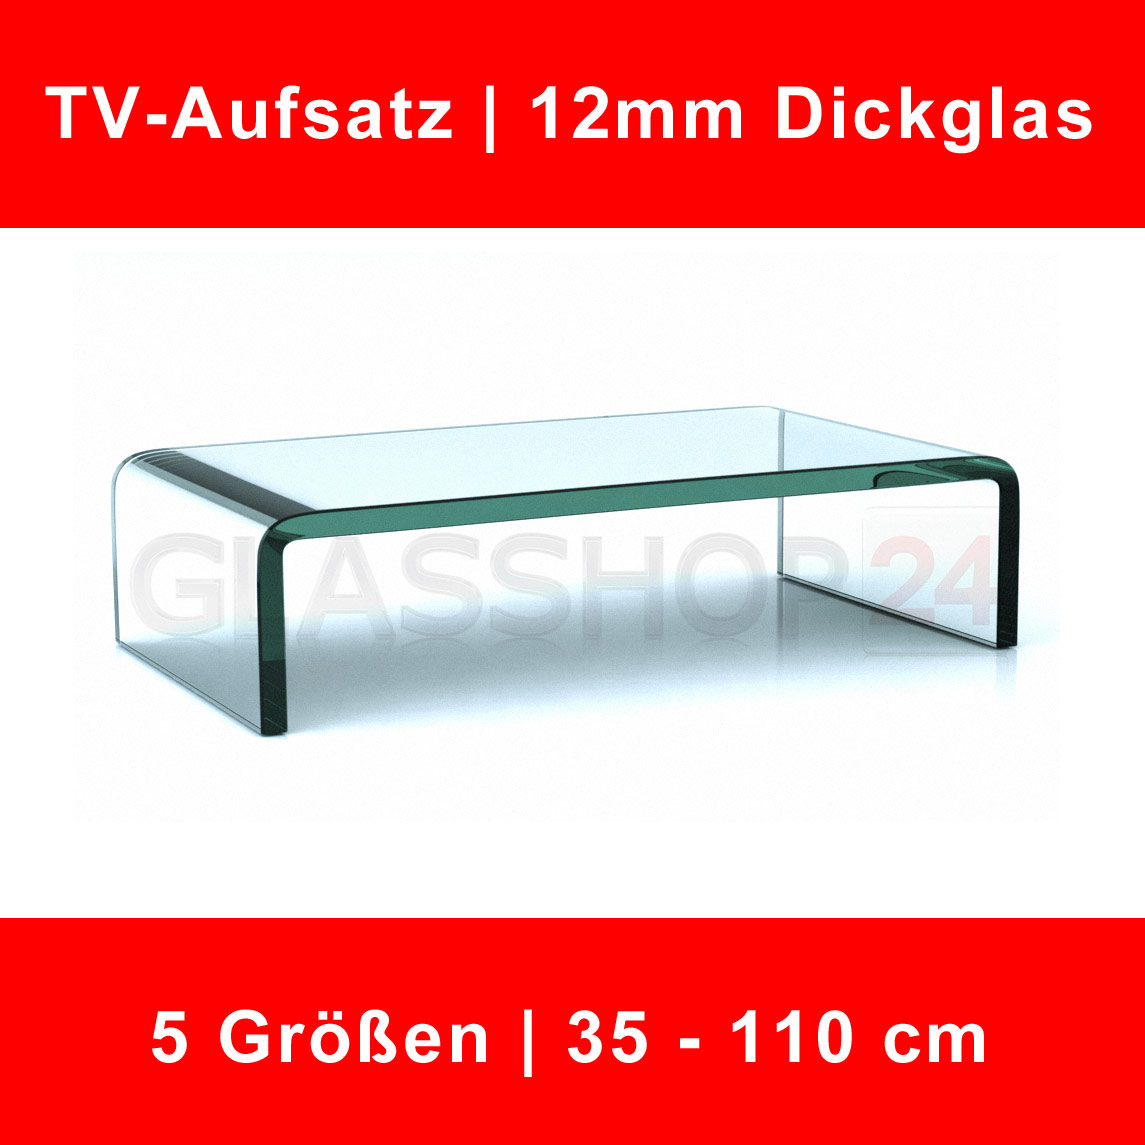 tv glasaufsatz glas tisch aufsatz monitor erh hung podest led tft lcd pictures to pin on. Black Bedroom Furniture Sets. Home Design Ideas